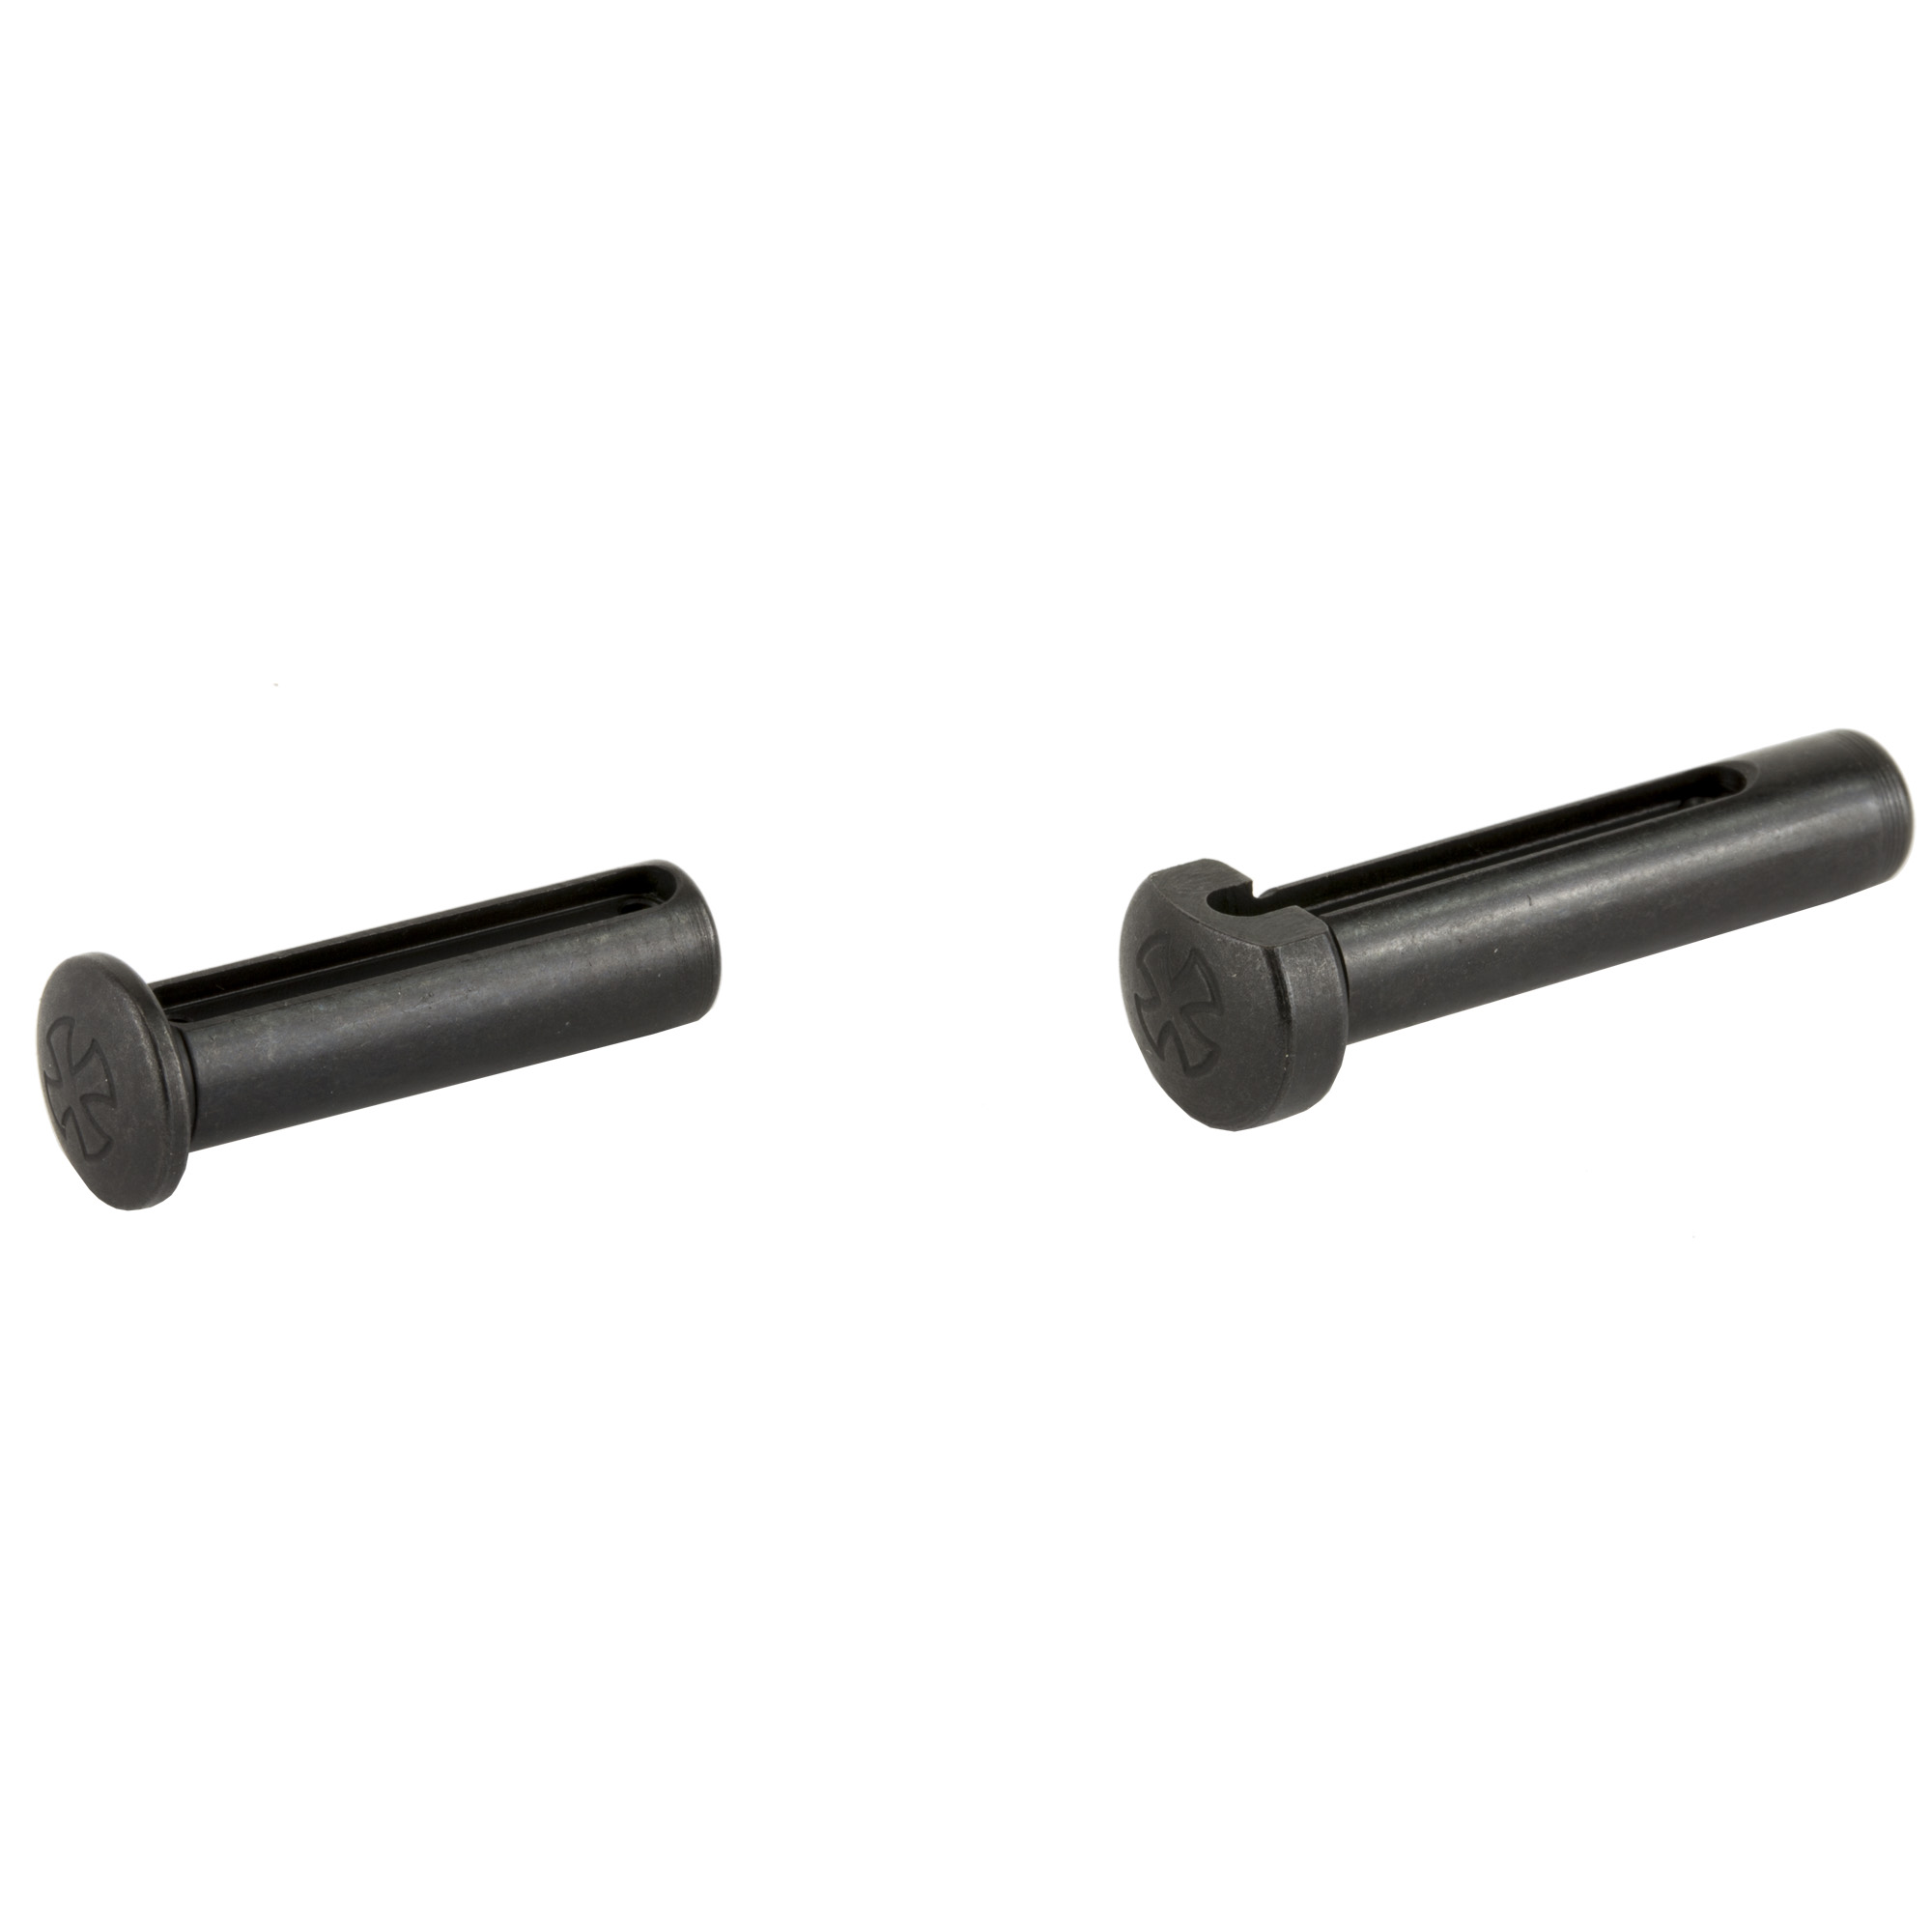 These steel pins with nitride finish are a direct replacement for the factory rear takedown and front pivot pin on your AR-15.